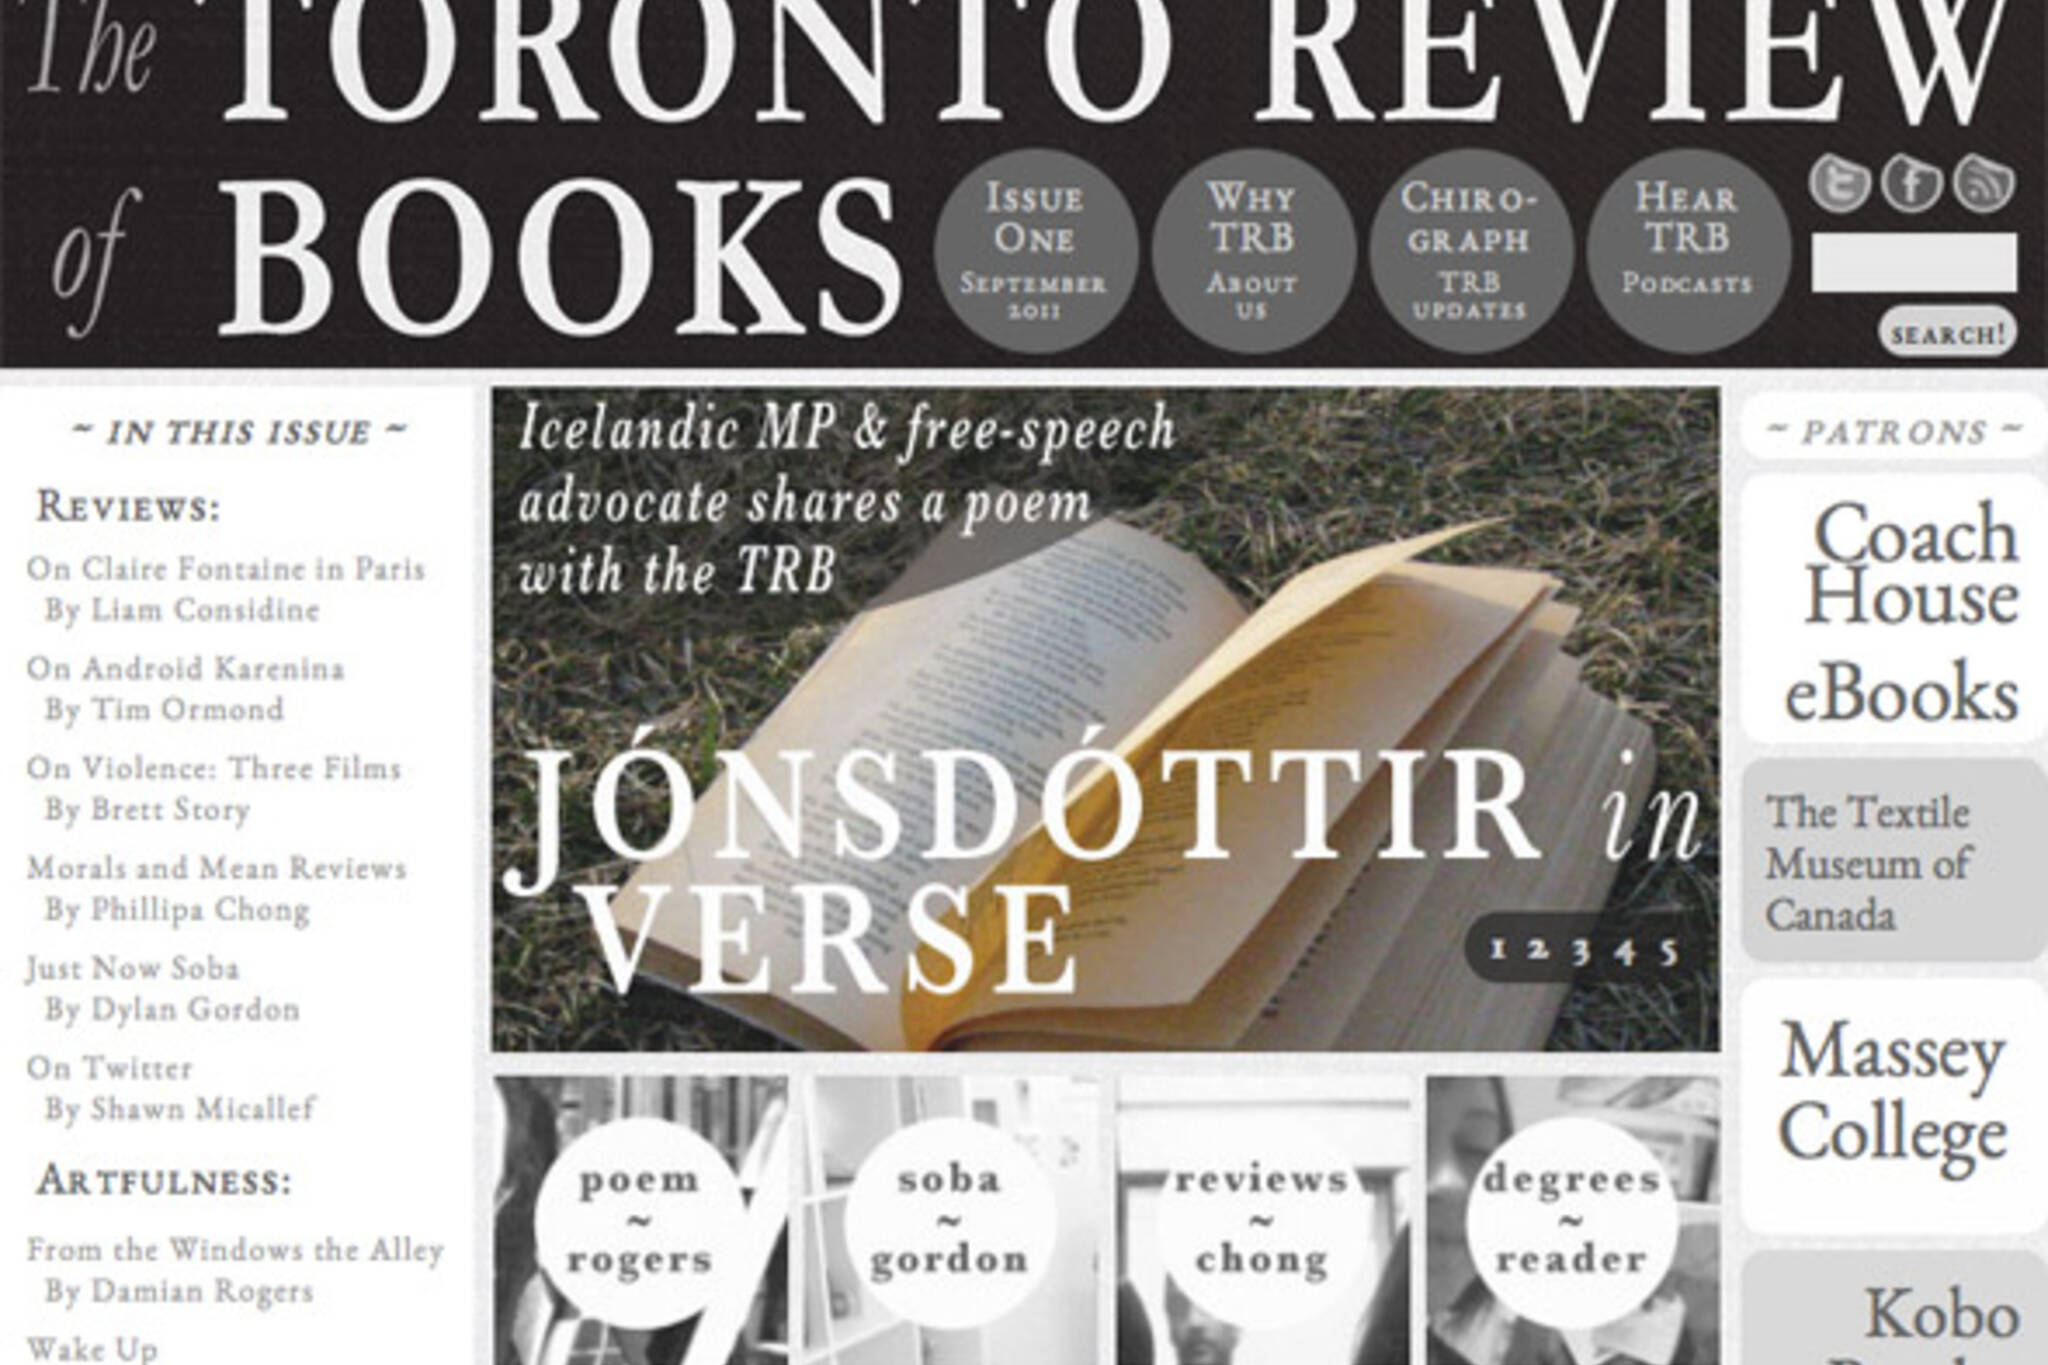 Toronto Review of Books